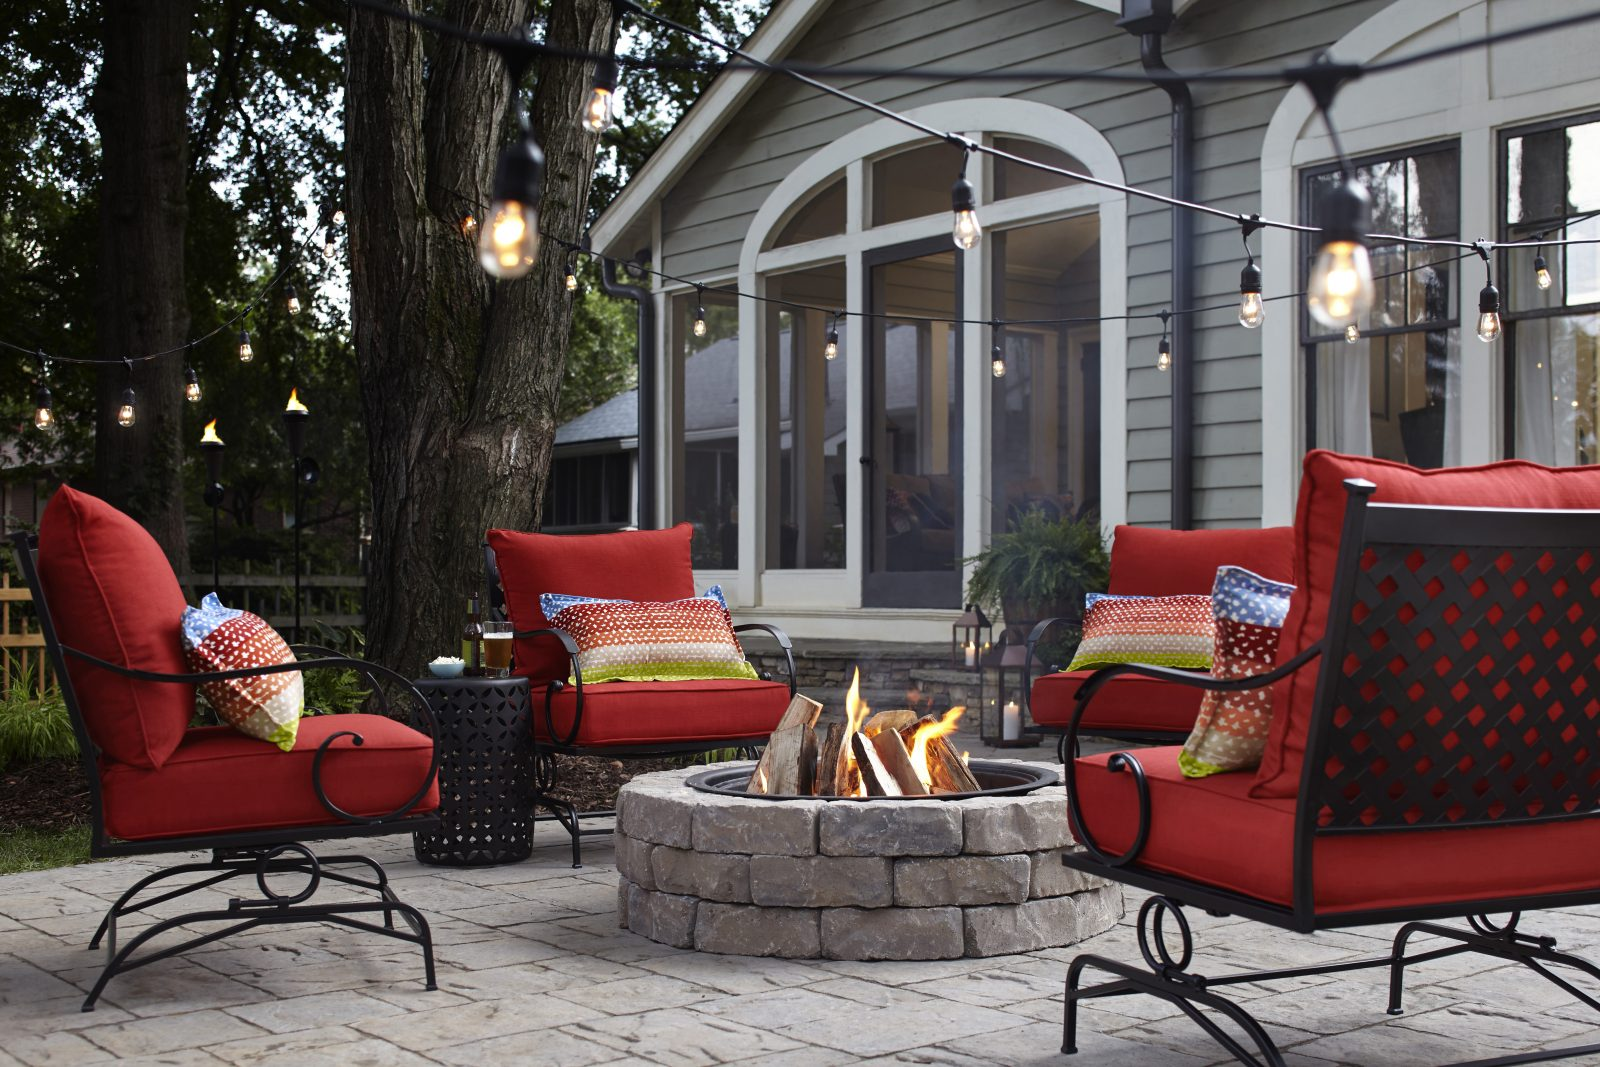 For entertaining or just spending time with the family, create an outdoor space that is comfortable and attractive. (Photo courtesy Lowe's)